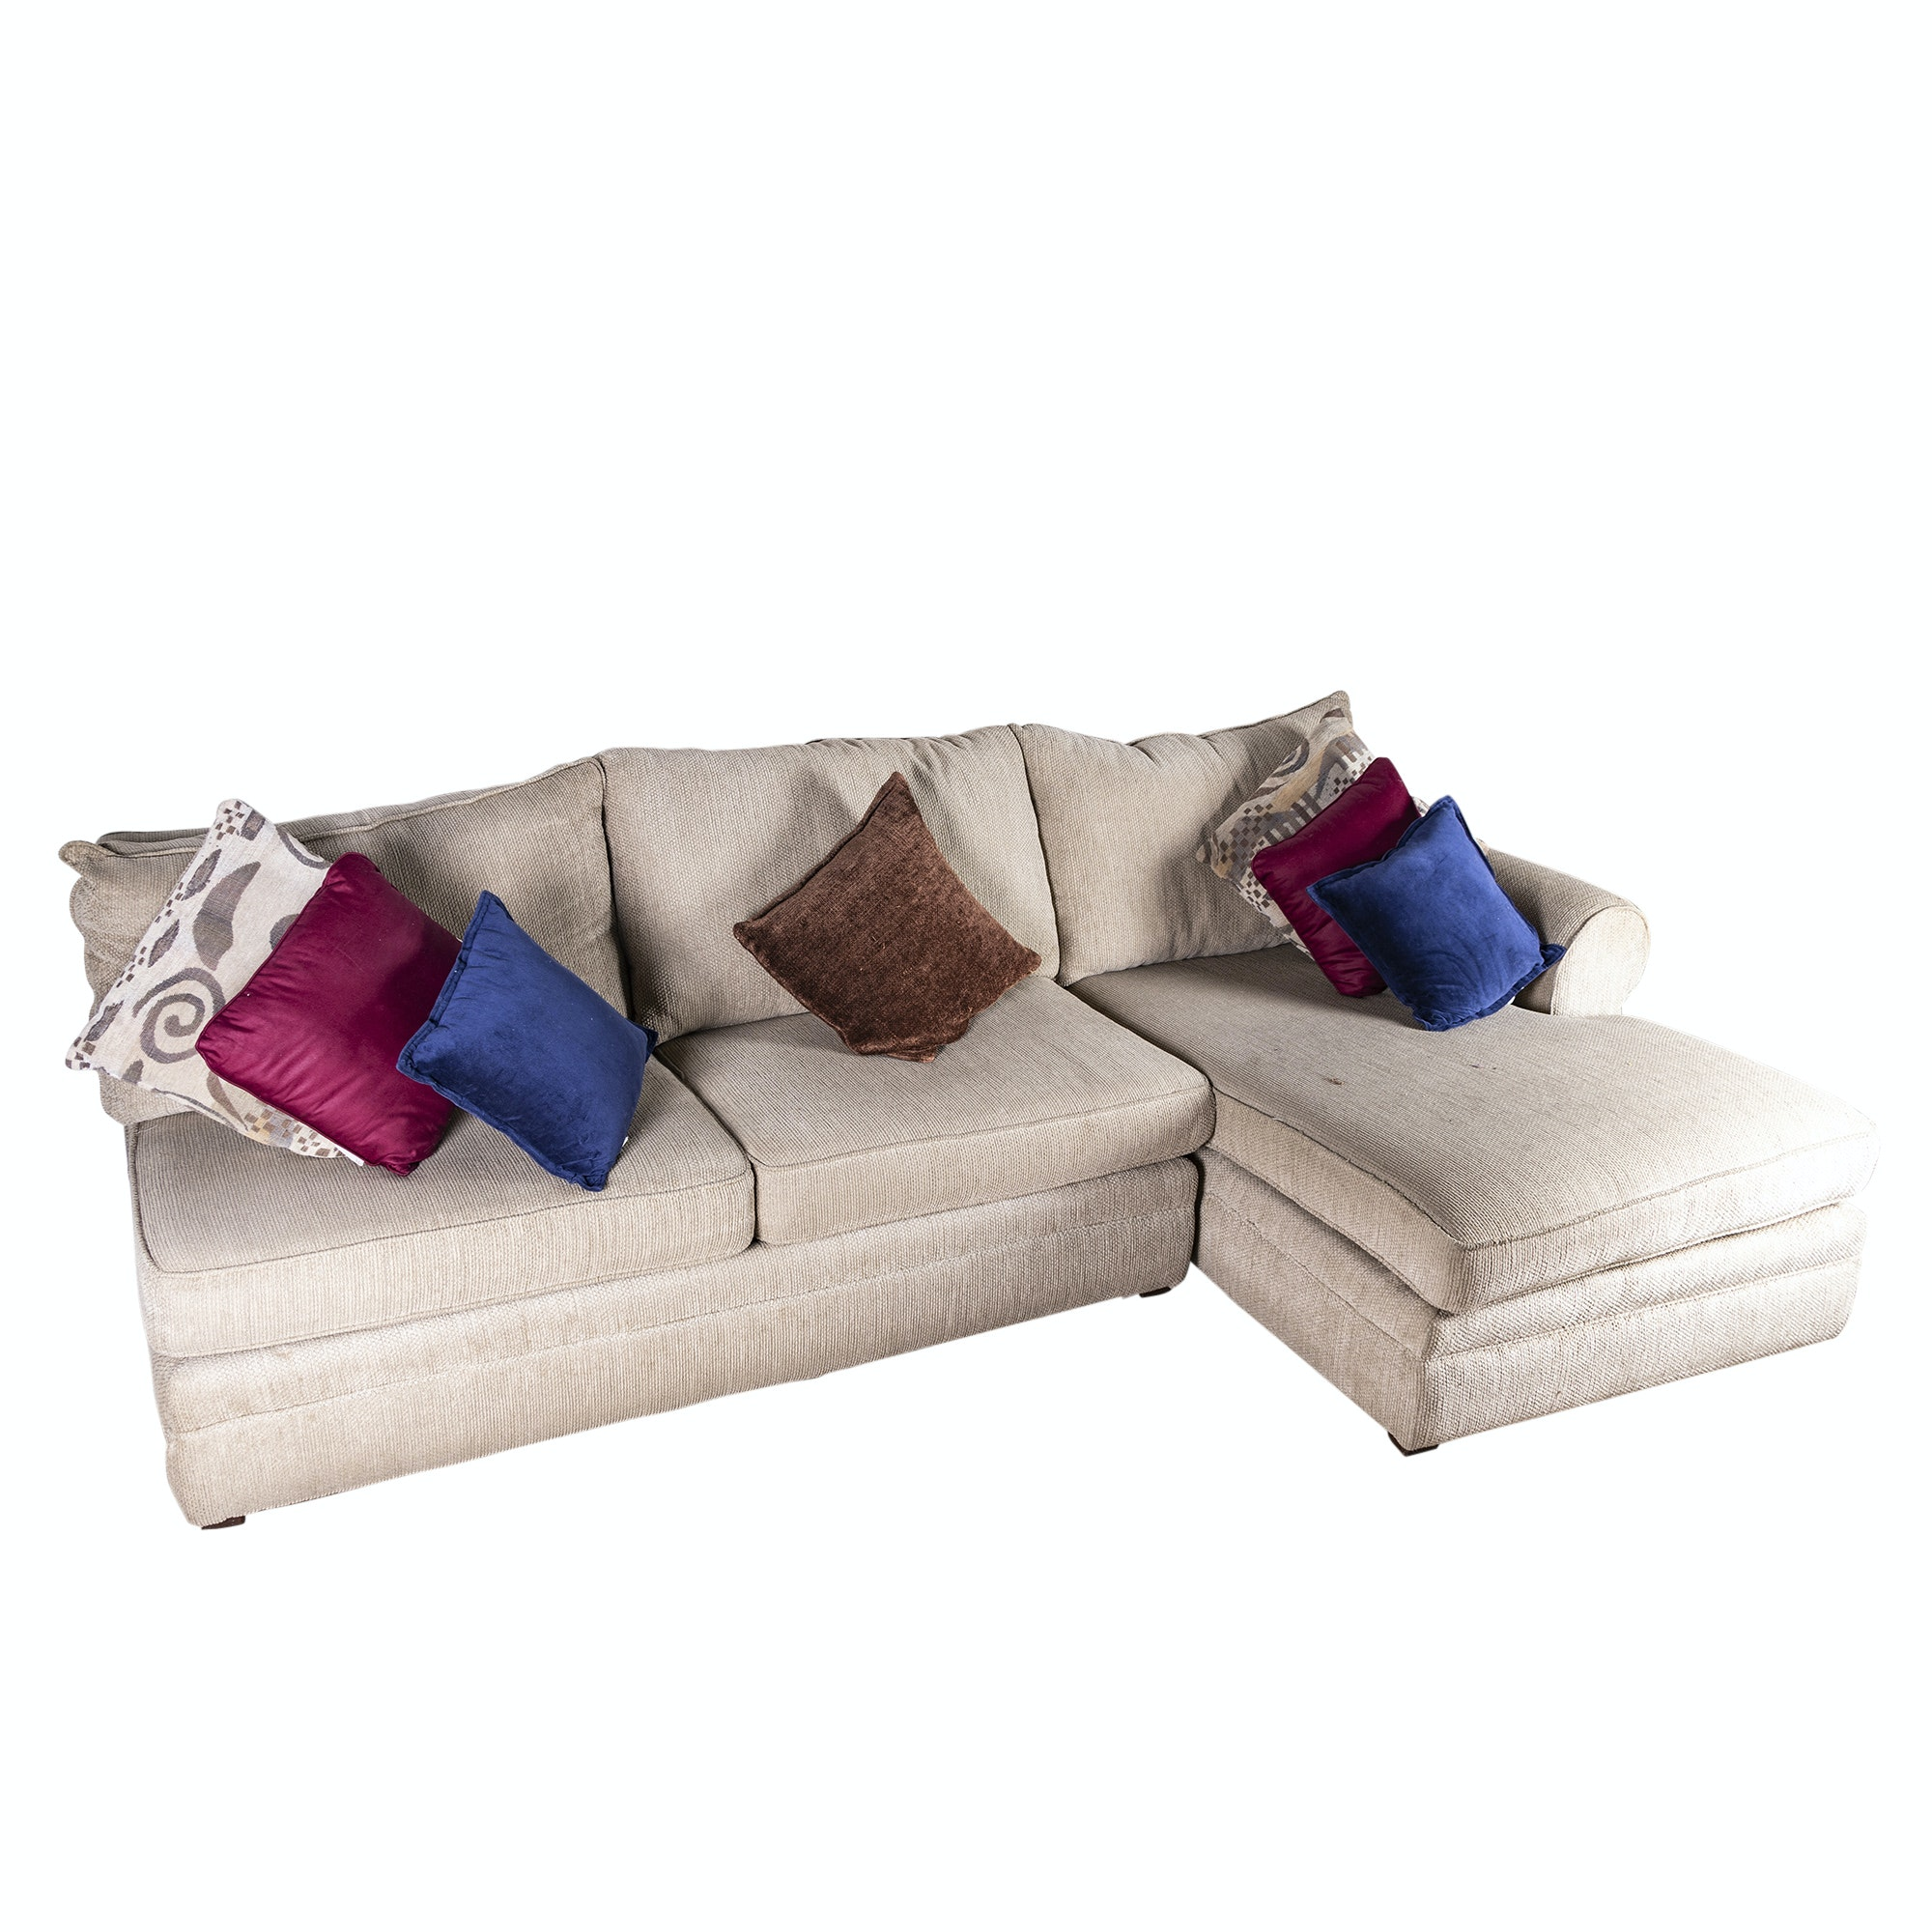 Sectional Sofa with Chaise, 21st Century